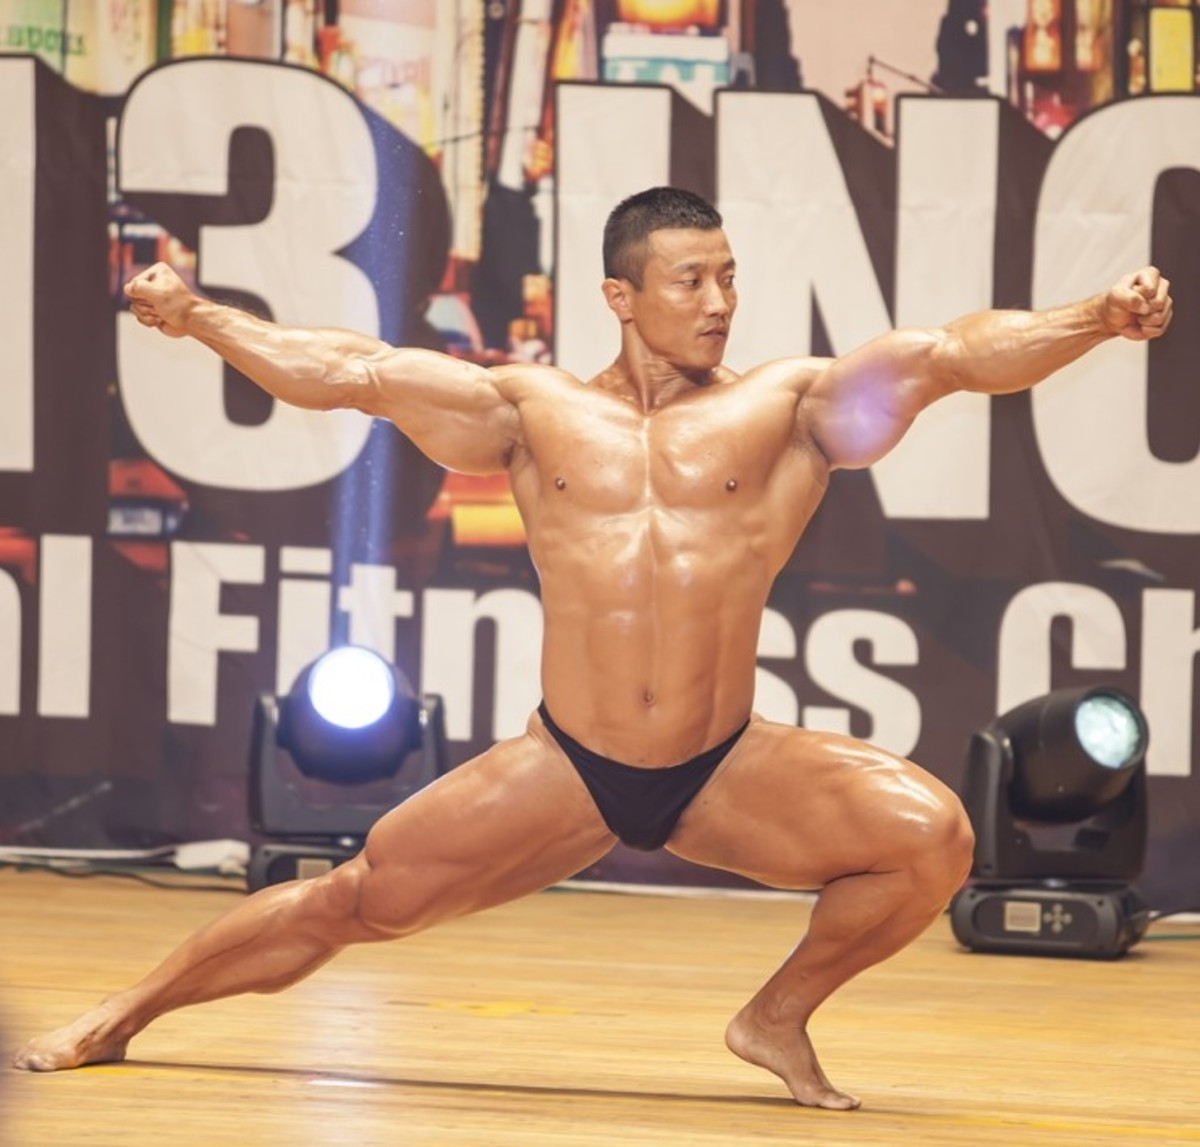 Kang Kyung Won at a 2013 bodybuilding competition in Incheon, South Korea